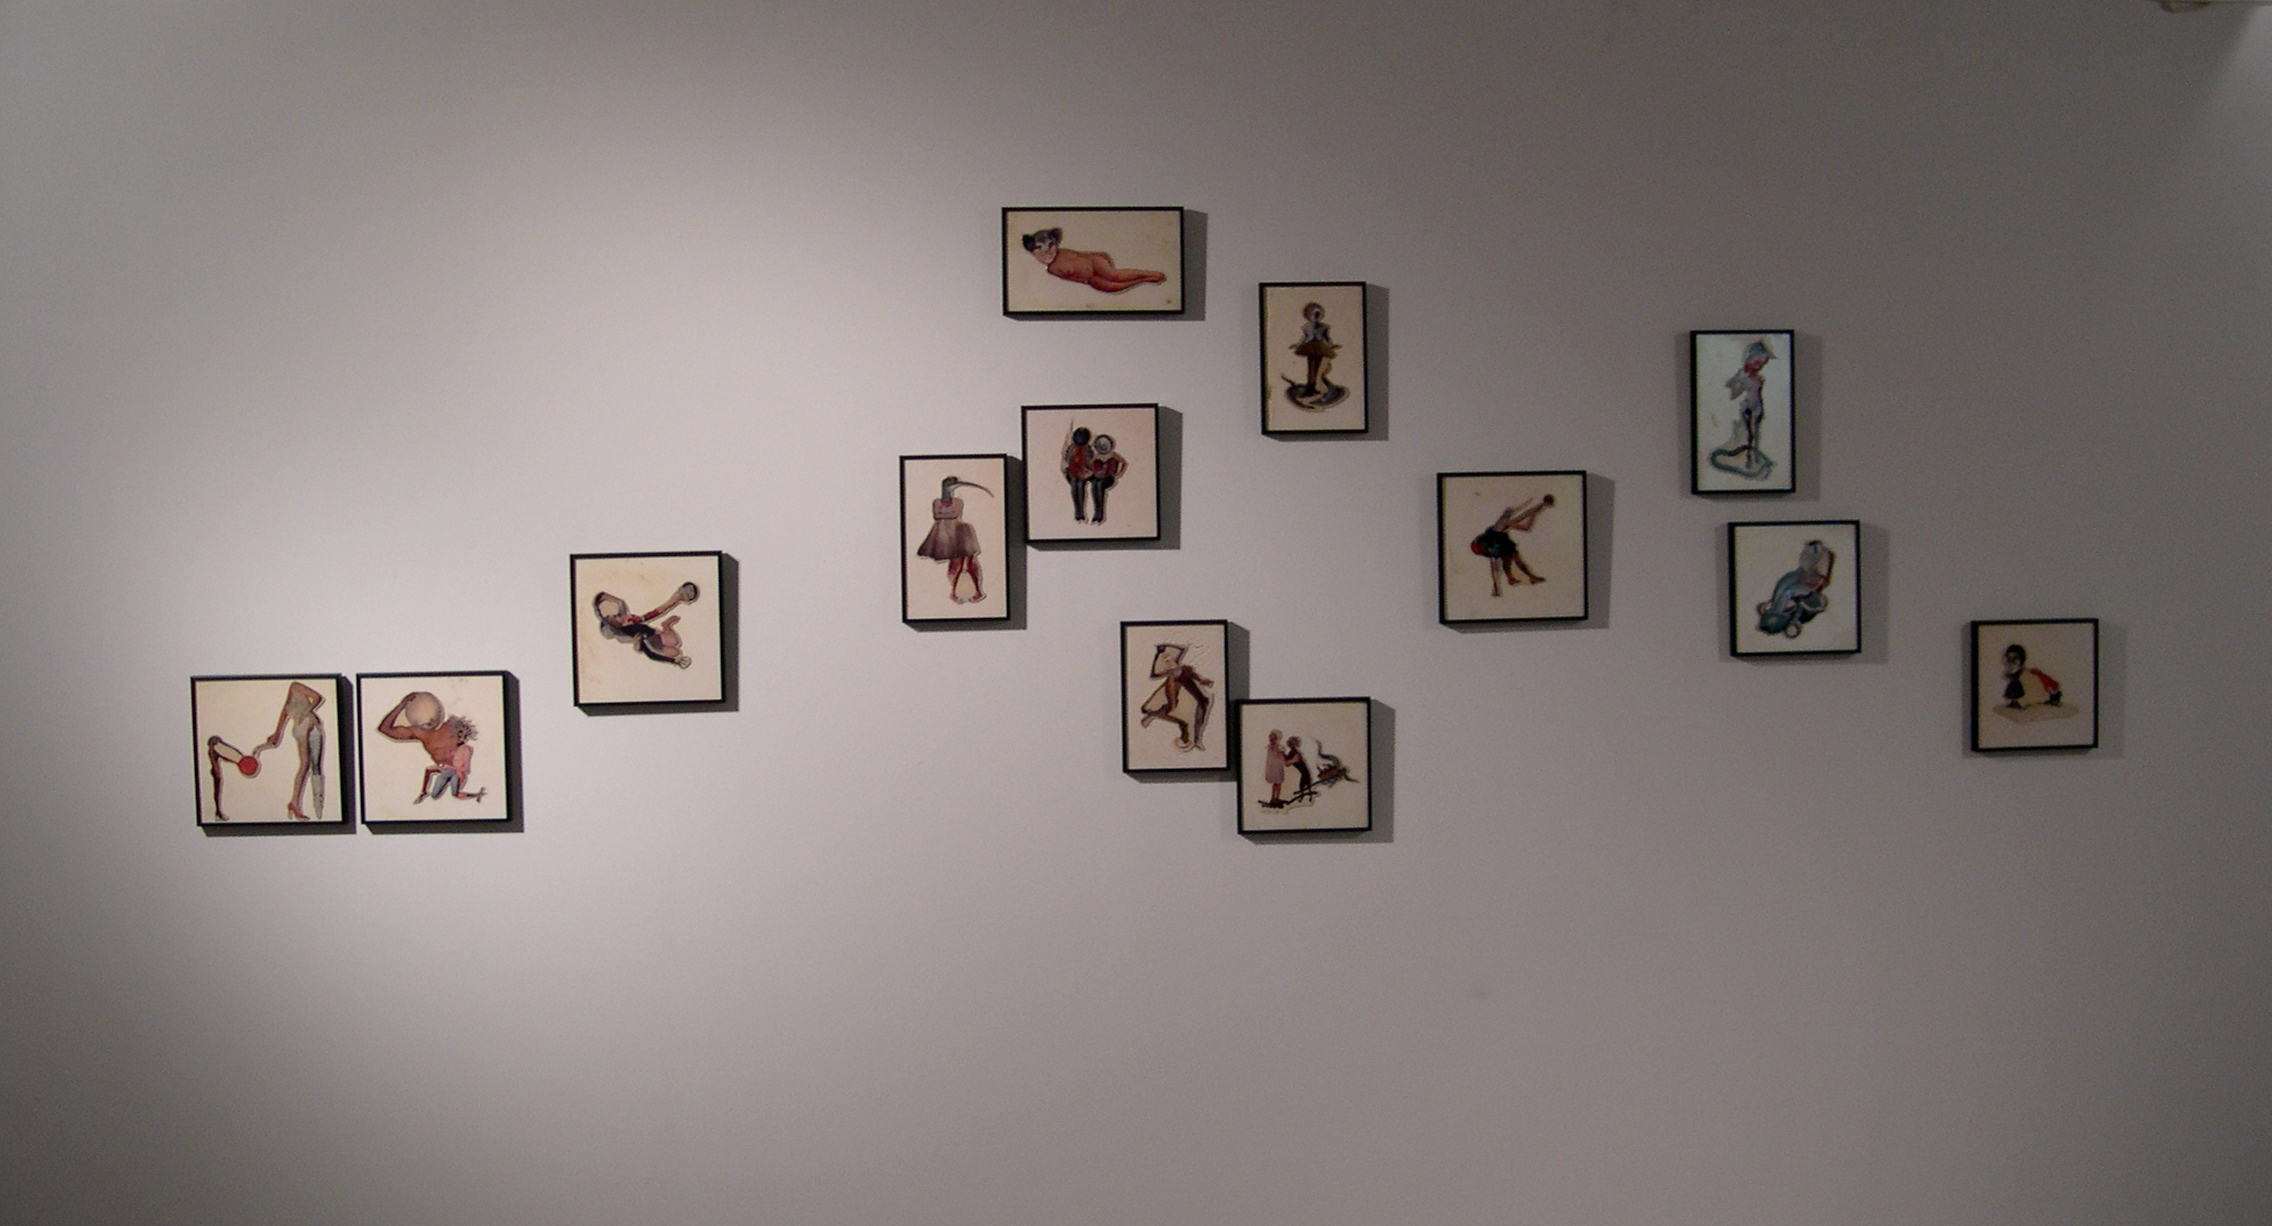 Installation View - Birds of Prey Series